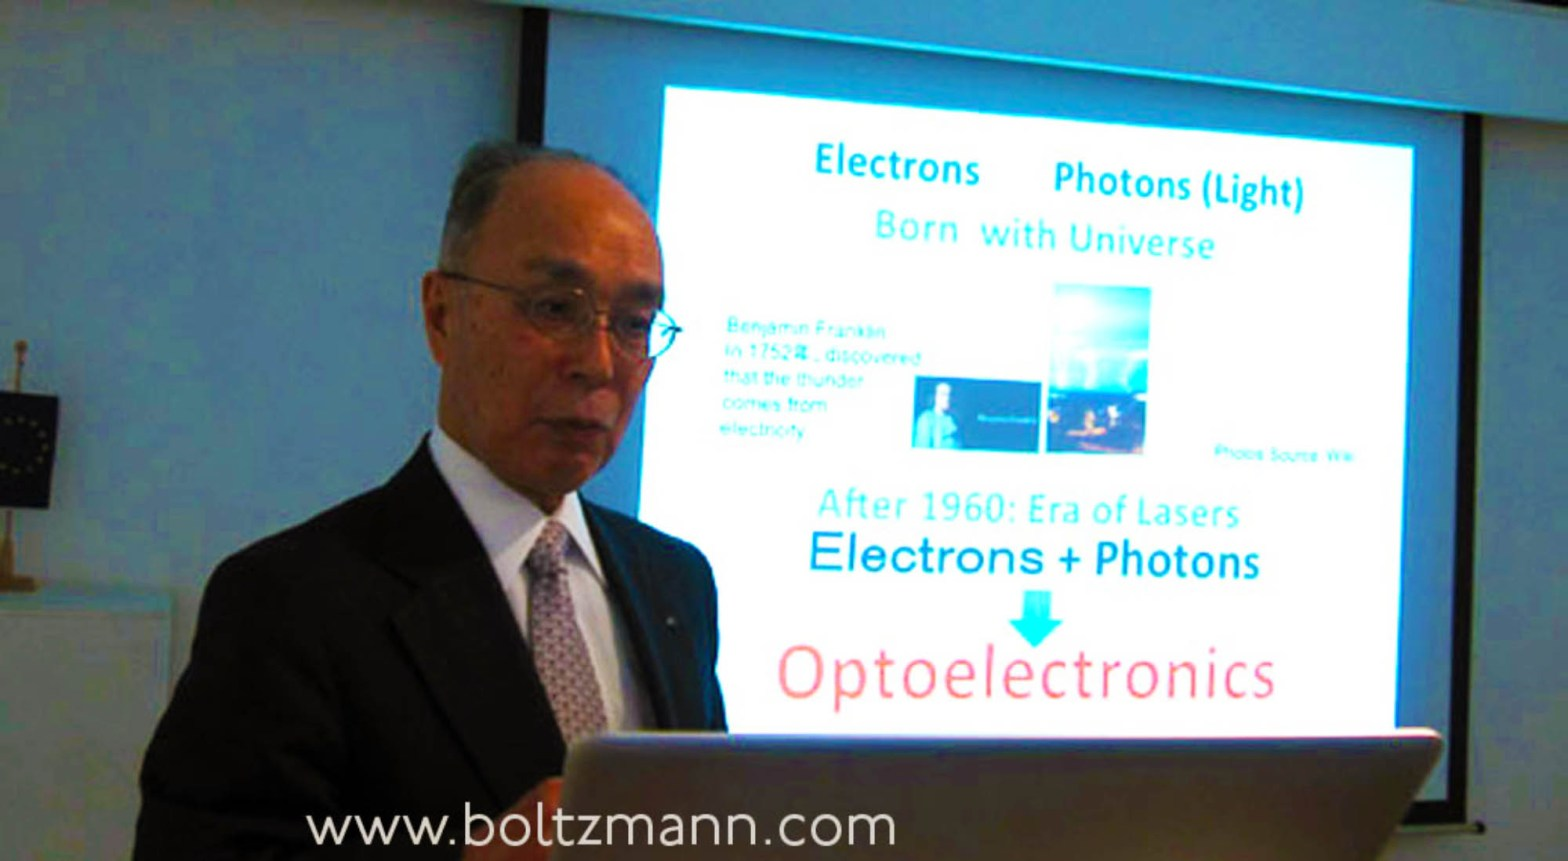 Vertical cavity surface emitting lasers (VCSEL) by their inventor, Kenichi Iga (6th Ludwig Boltzmann Symposium)